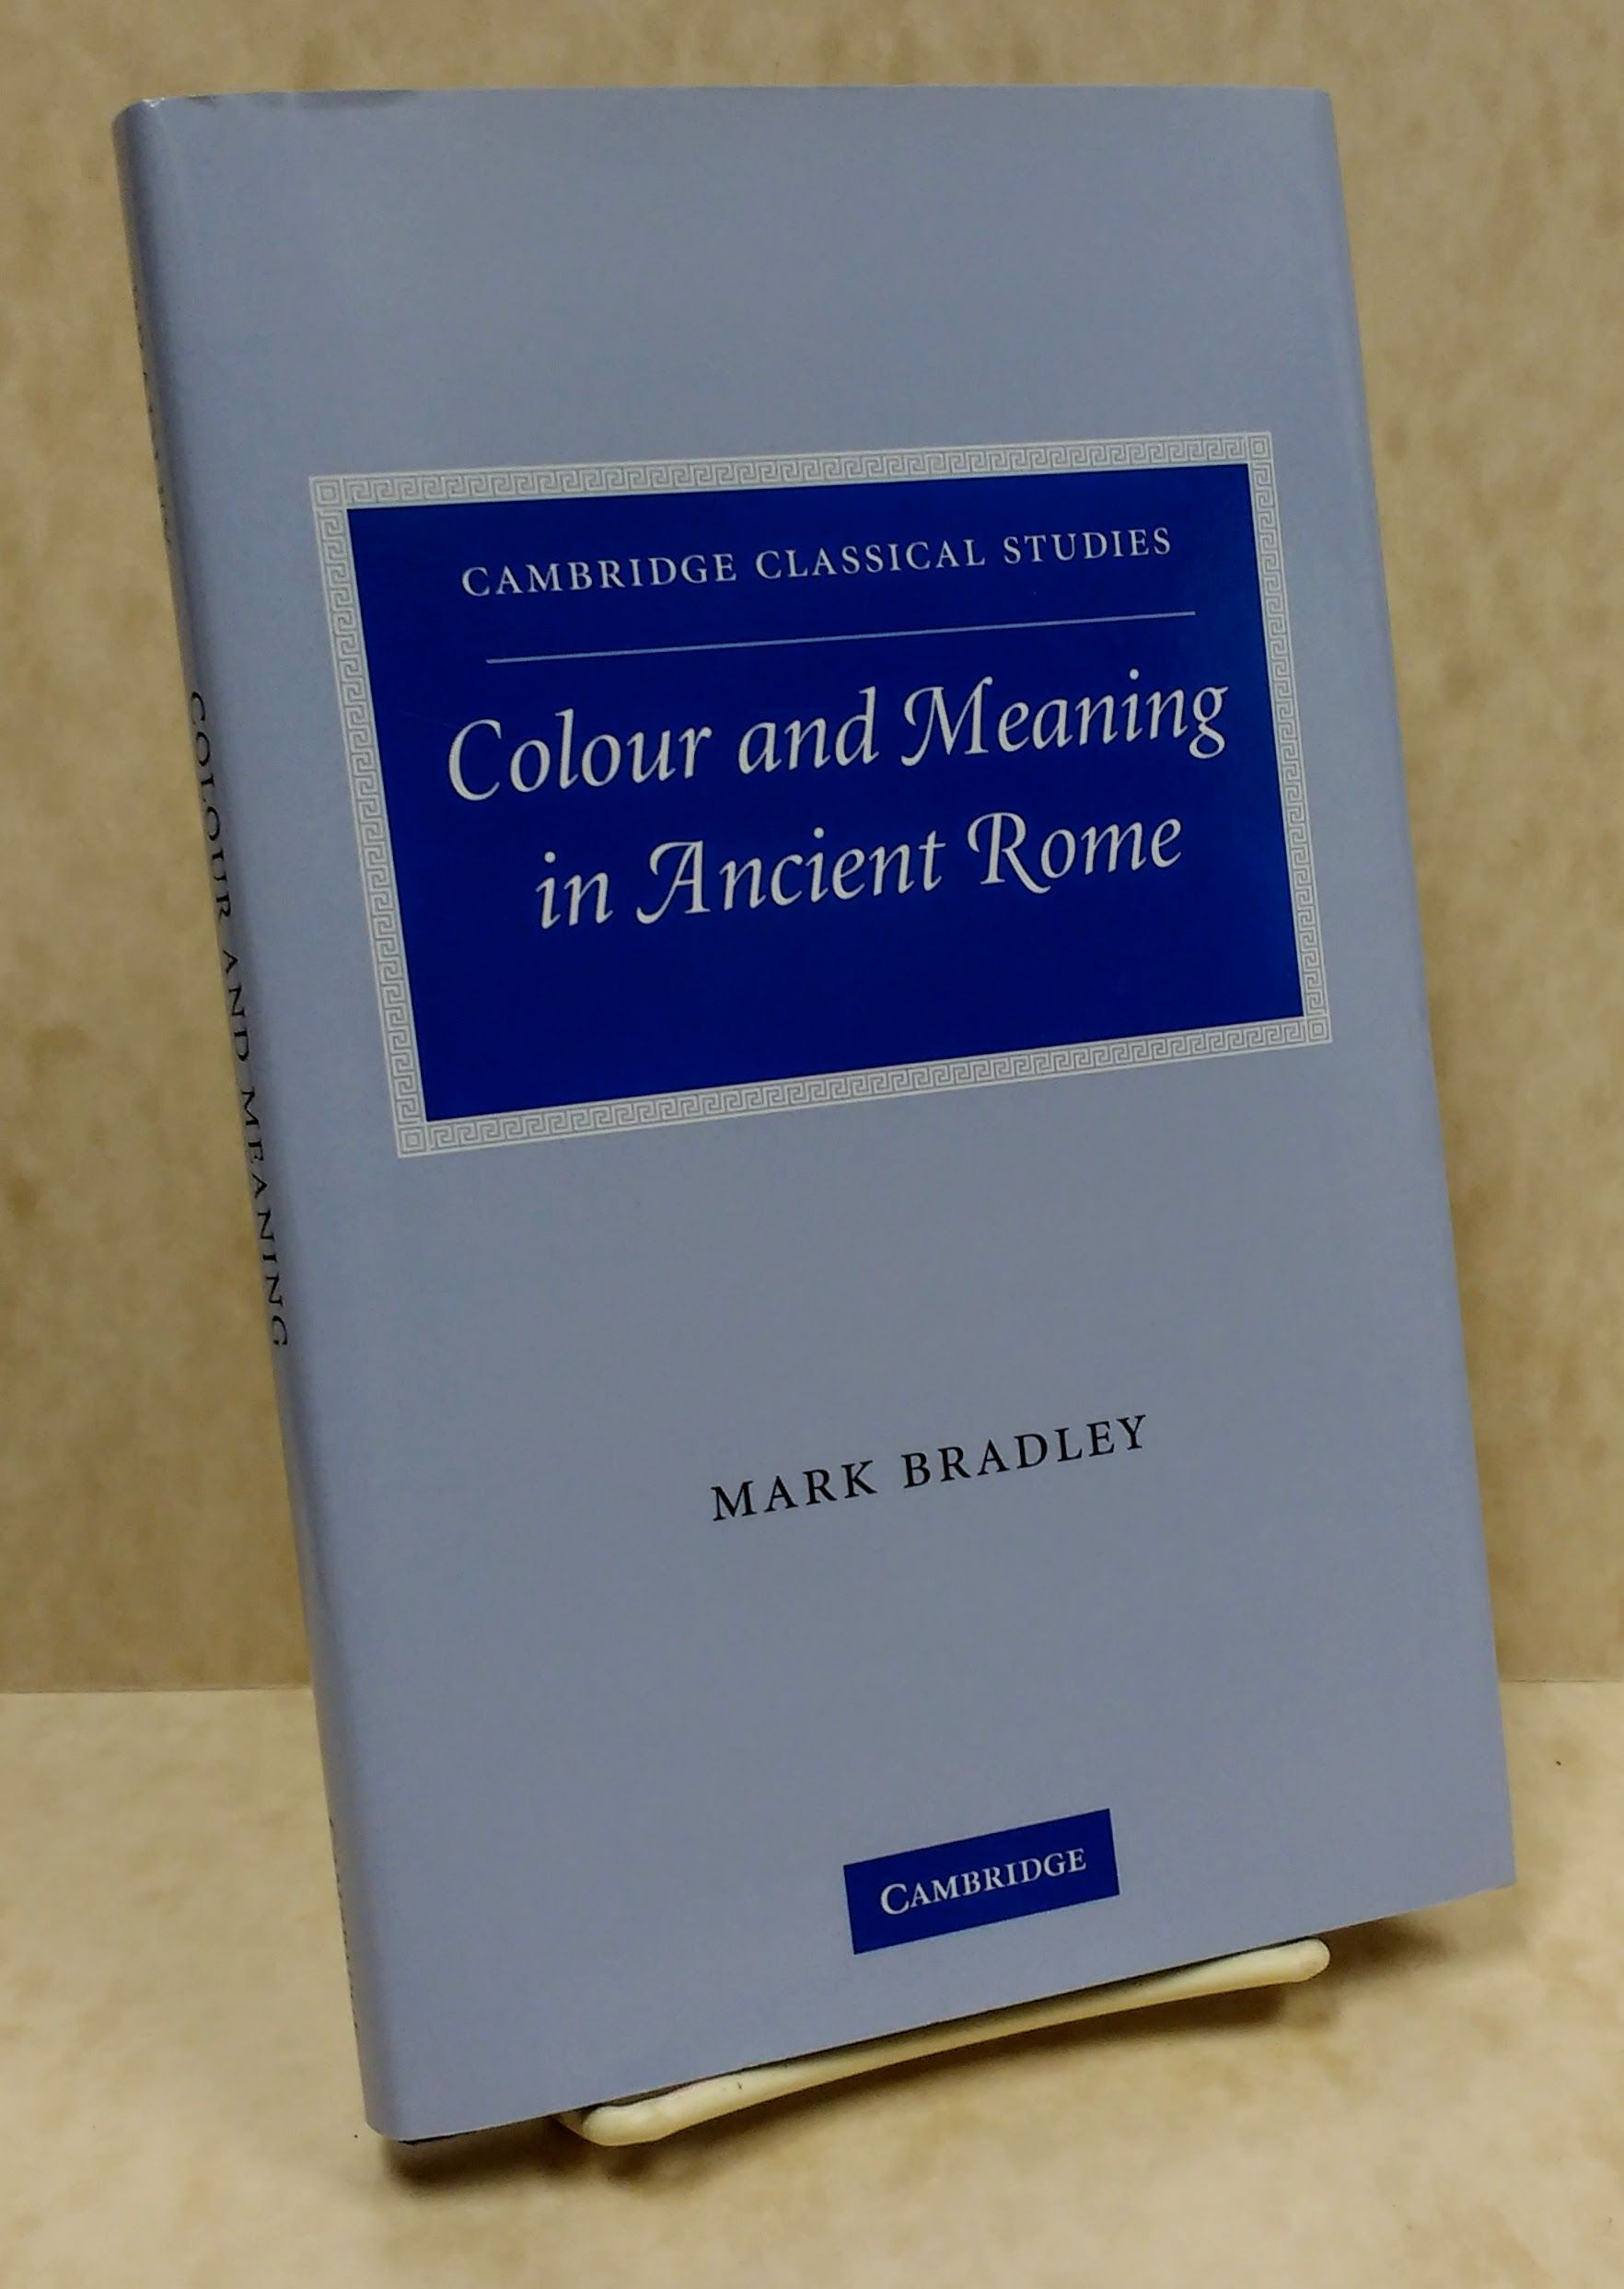 Colour and Meaning in Ancient Rome (Cambridge Classical Studies), Bradley, Mark